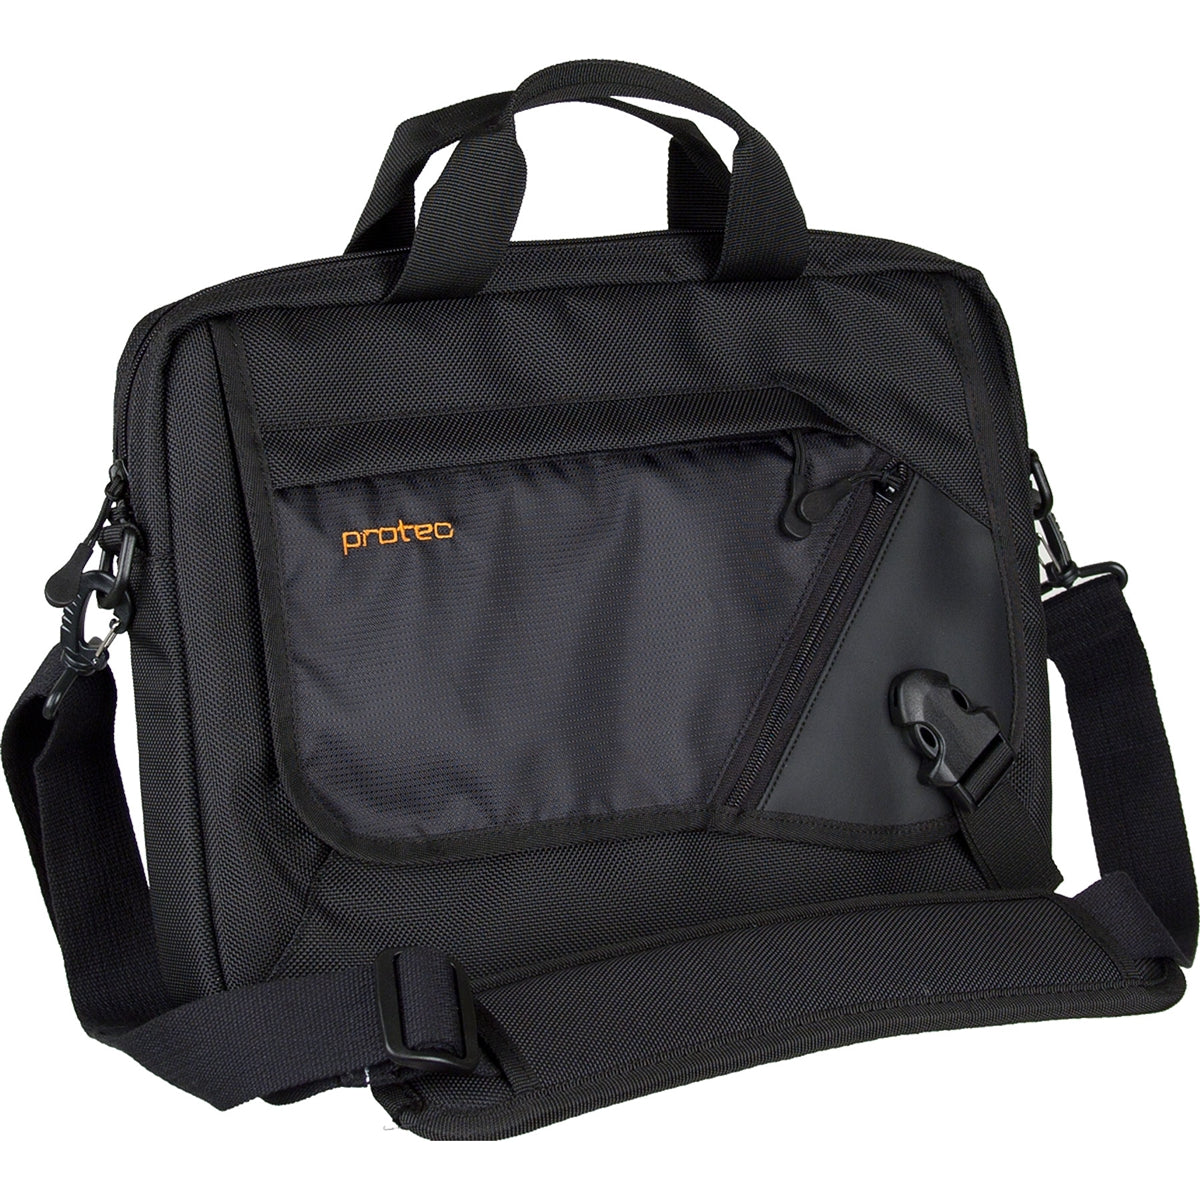 PROTEC Notebook/Tablet Messenger Bag 13.3'